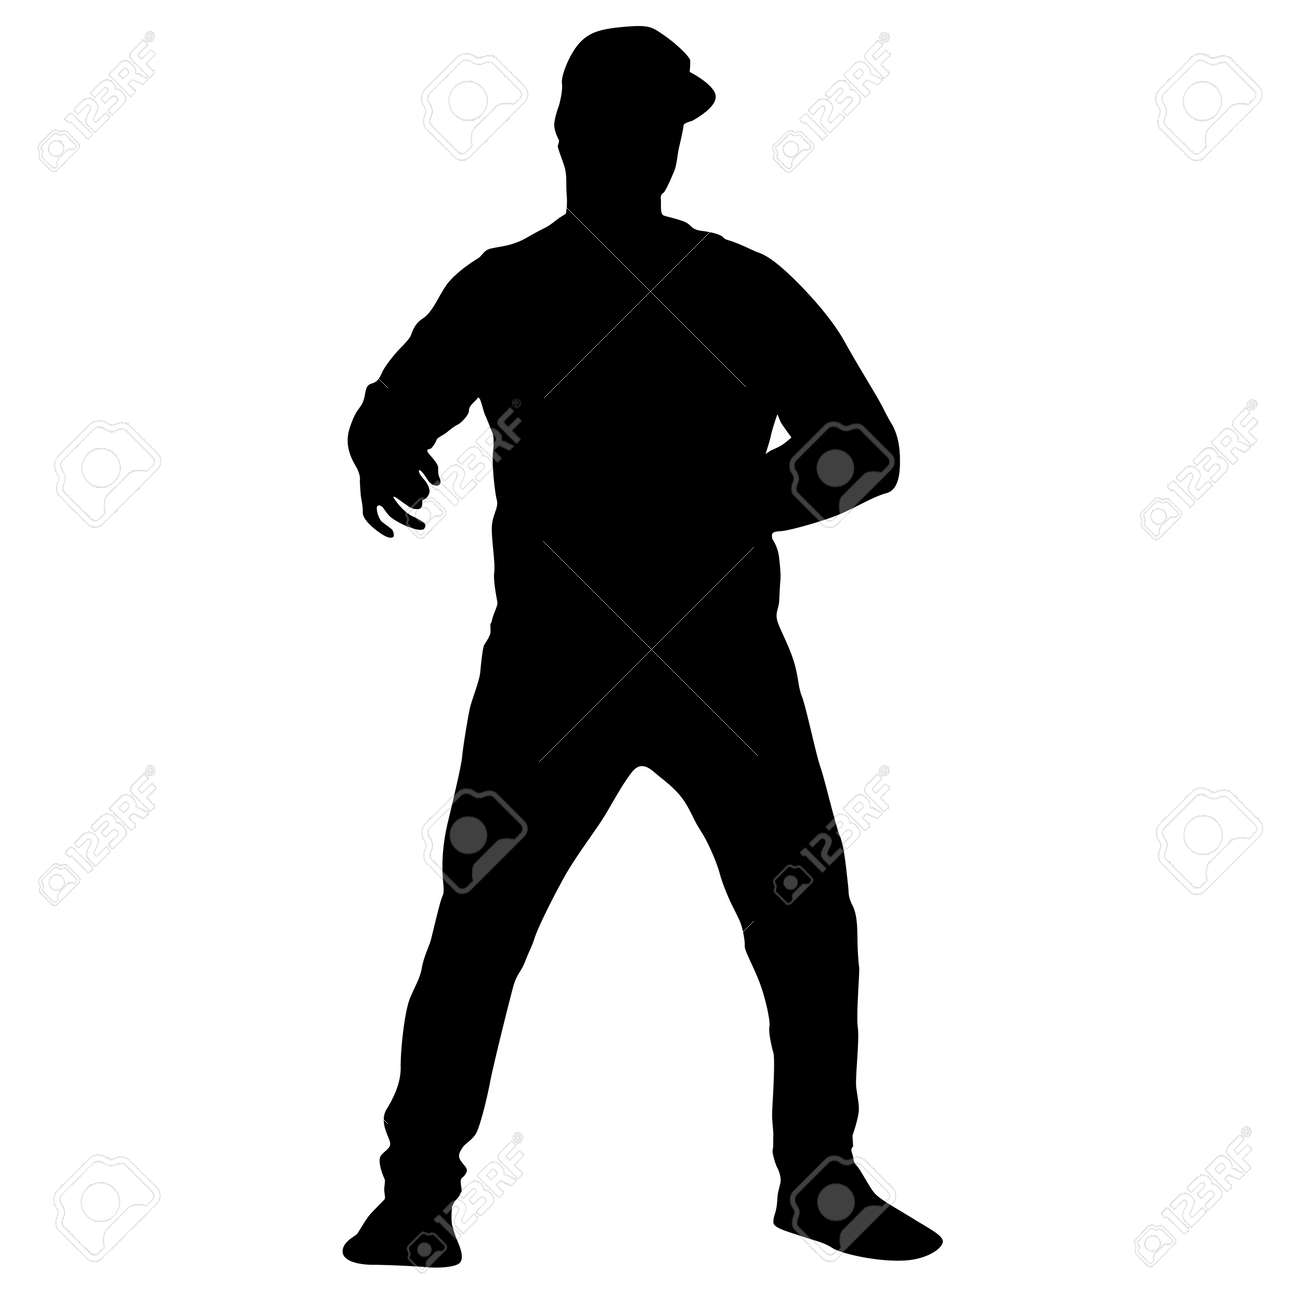 Black silhouette man standing, people on white background. - 147437538